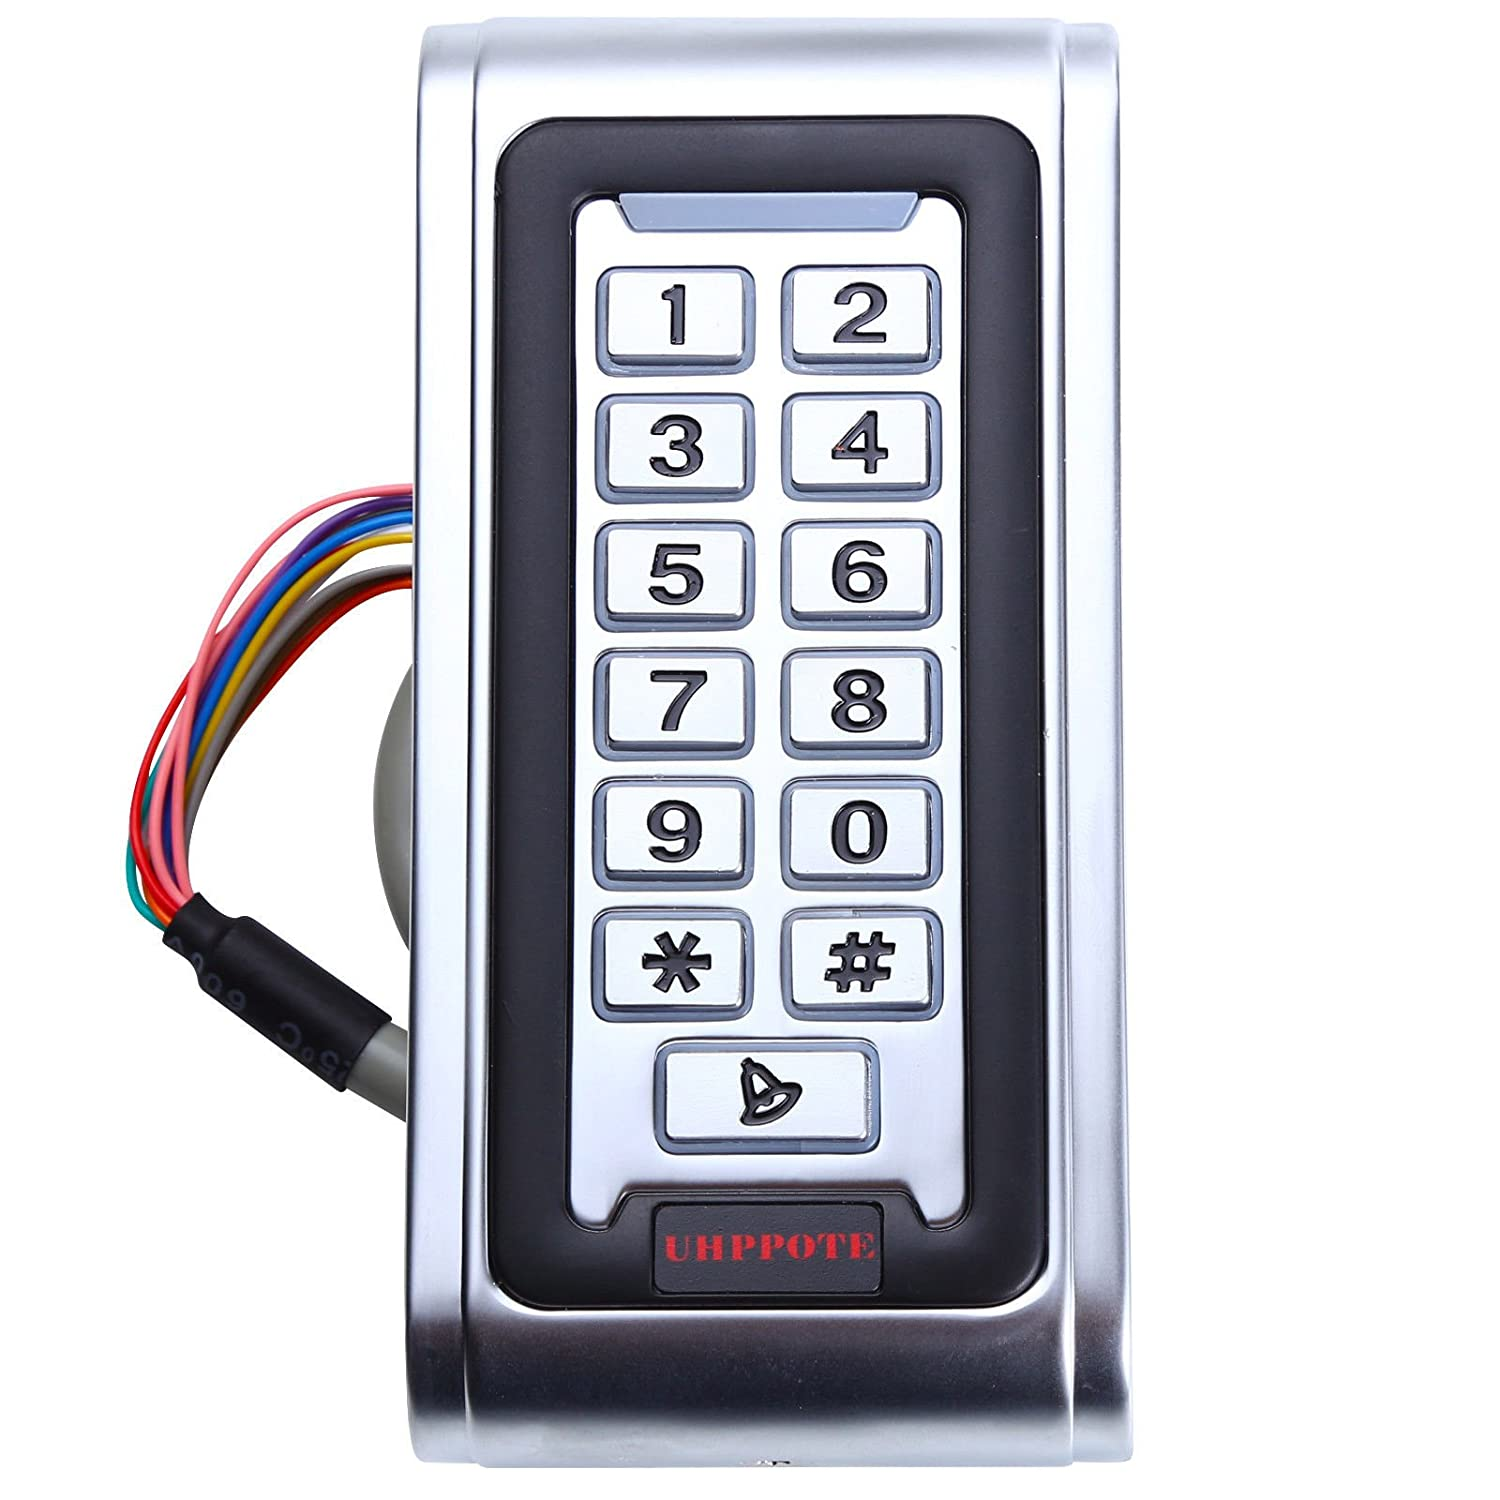 UHPPOTE 13.56MHZ IC Waterproof Metal Case Stand-Alone Access Control Keypad with Wiegand 26-bit Interface